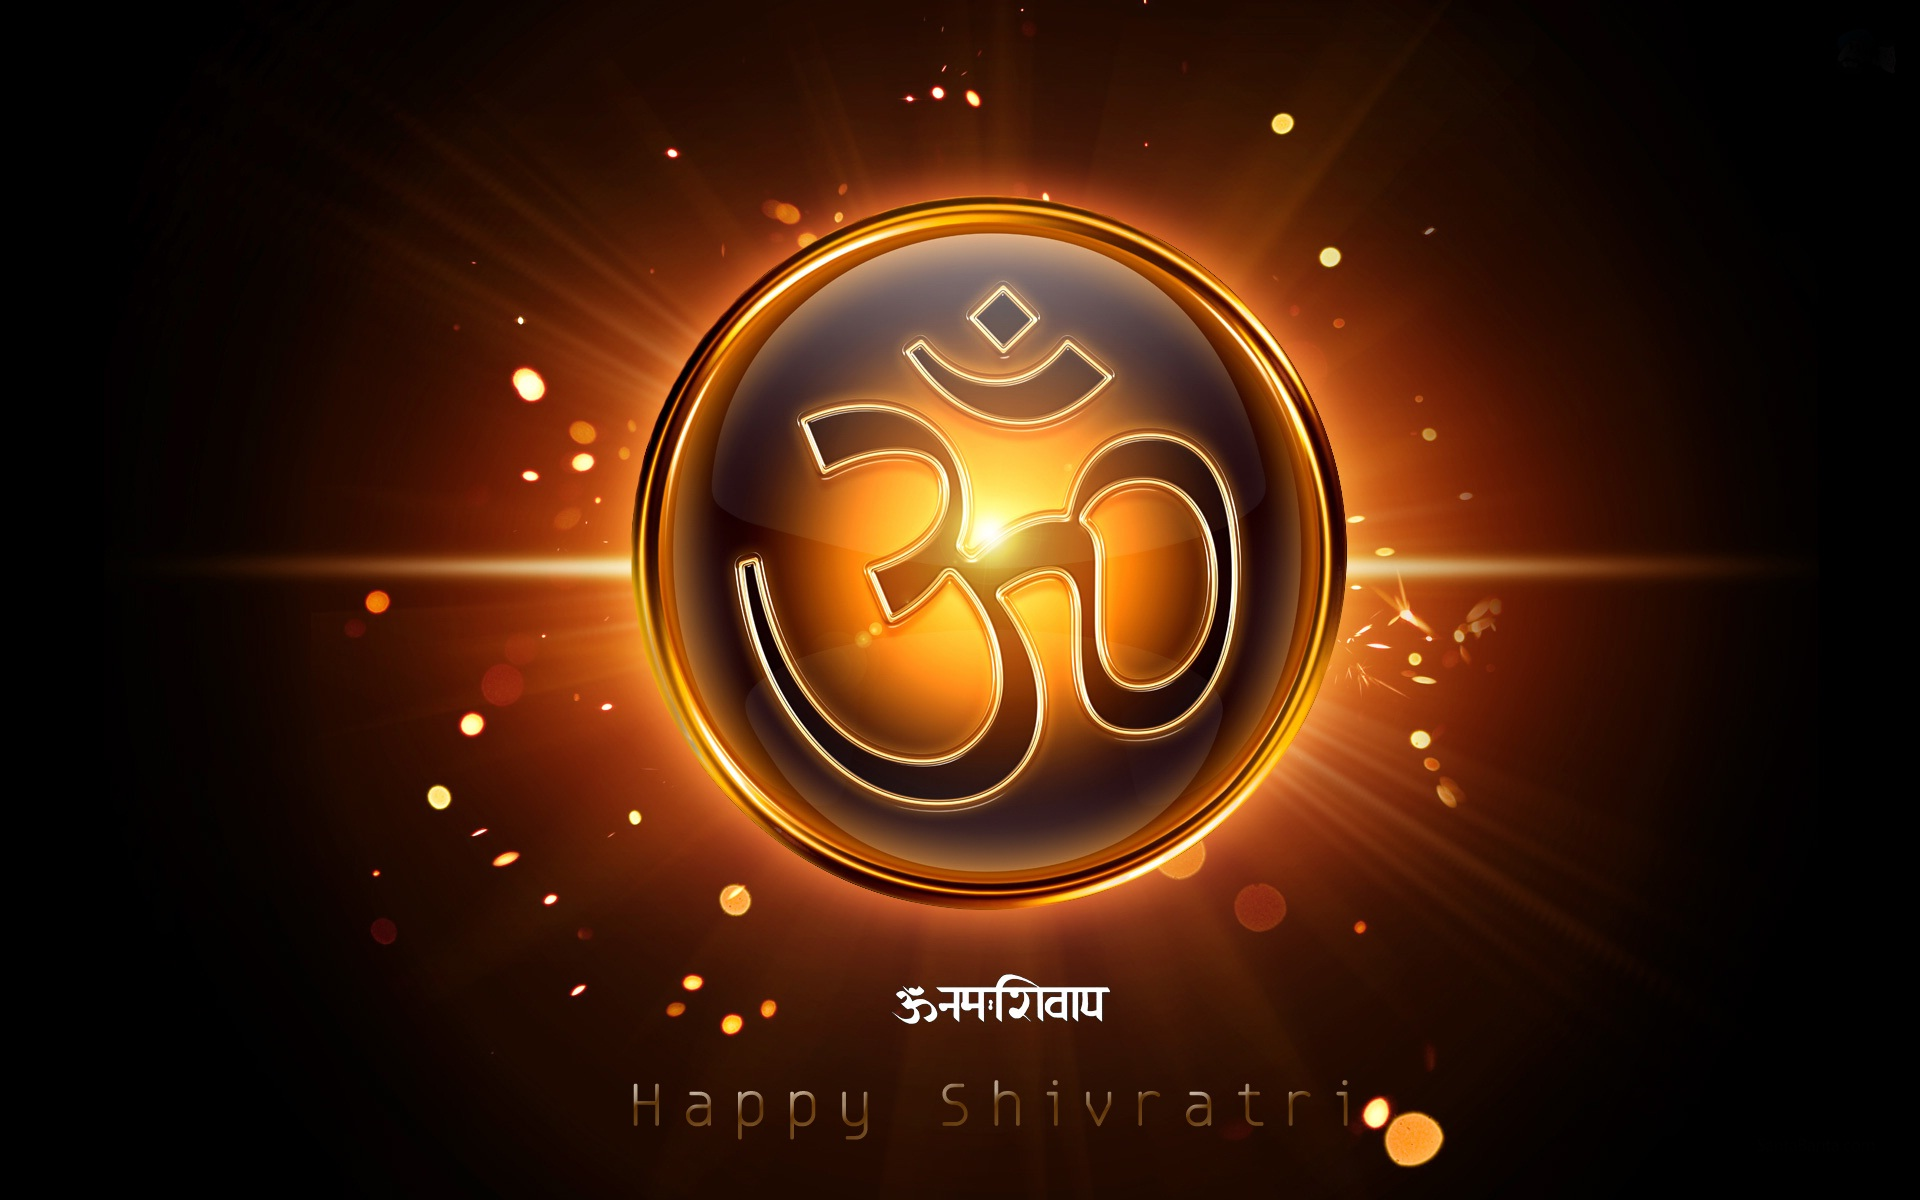 Lord Shiva Wallpapers 3d: Lord Shiva Wallpapers High Resolution 3d 21+